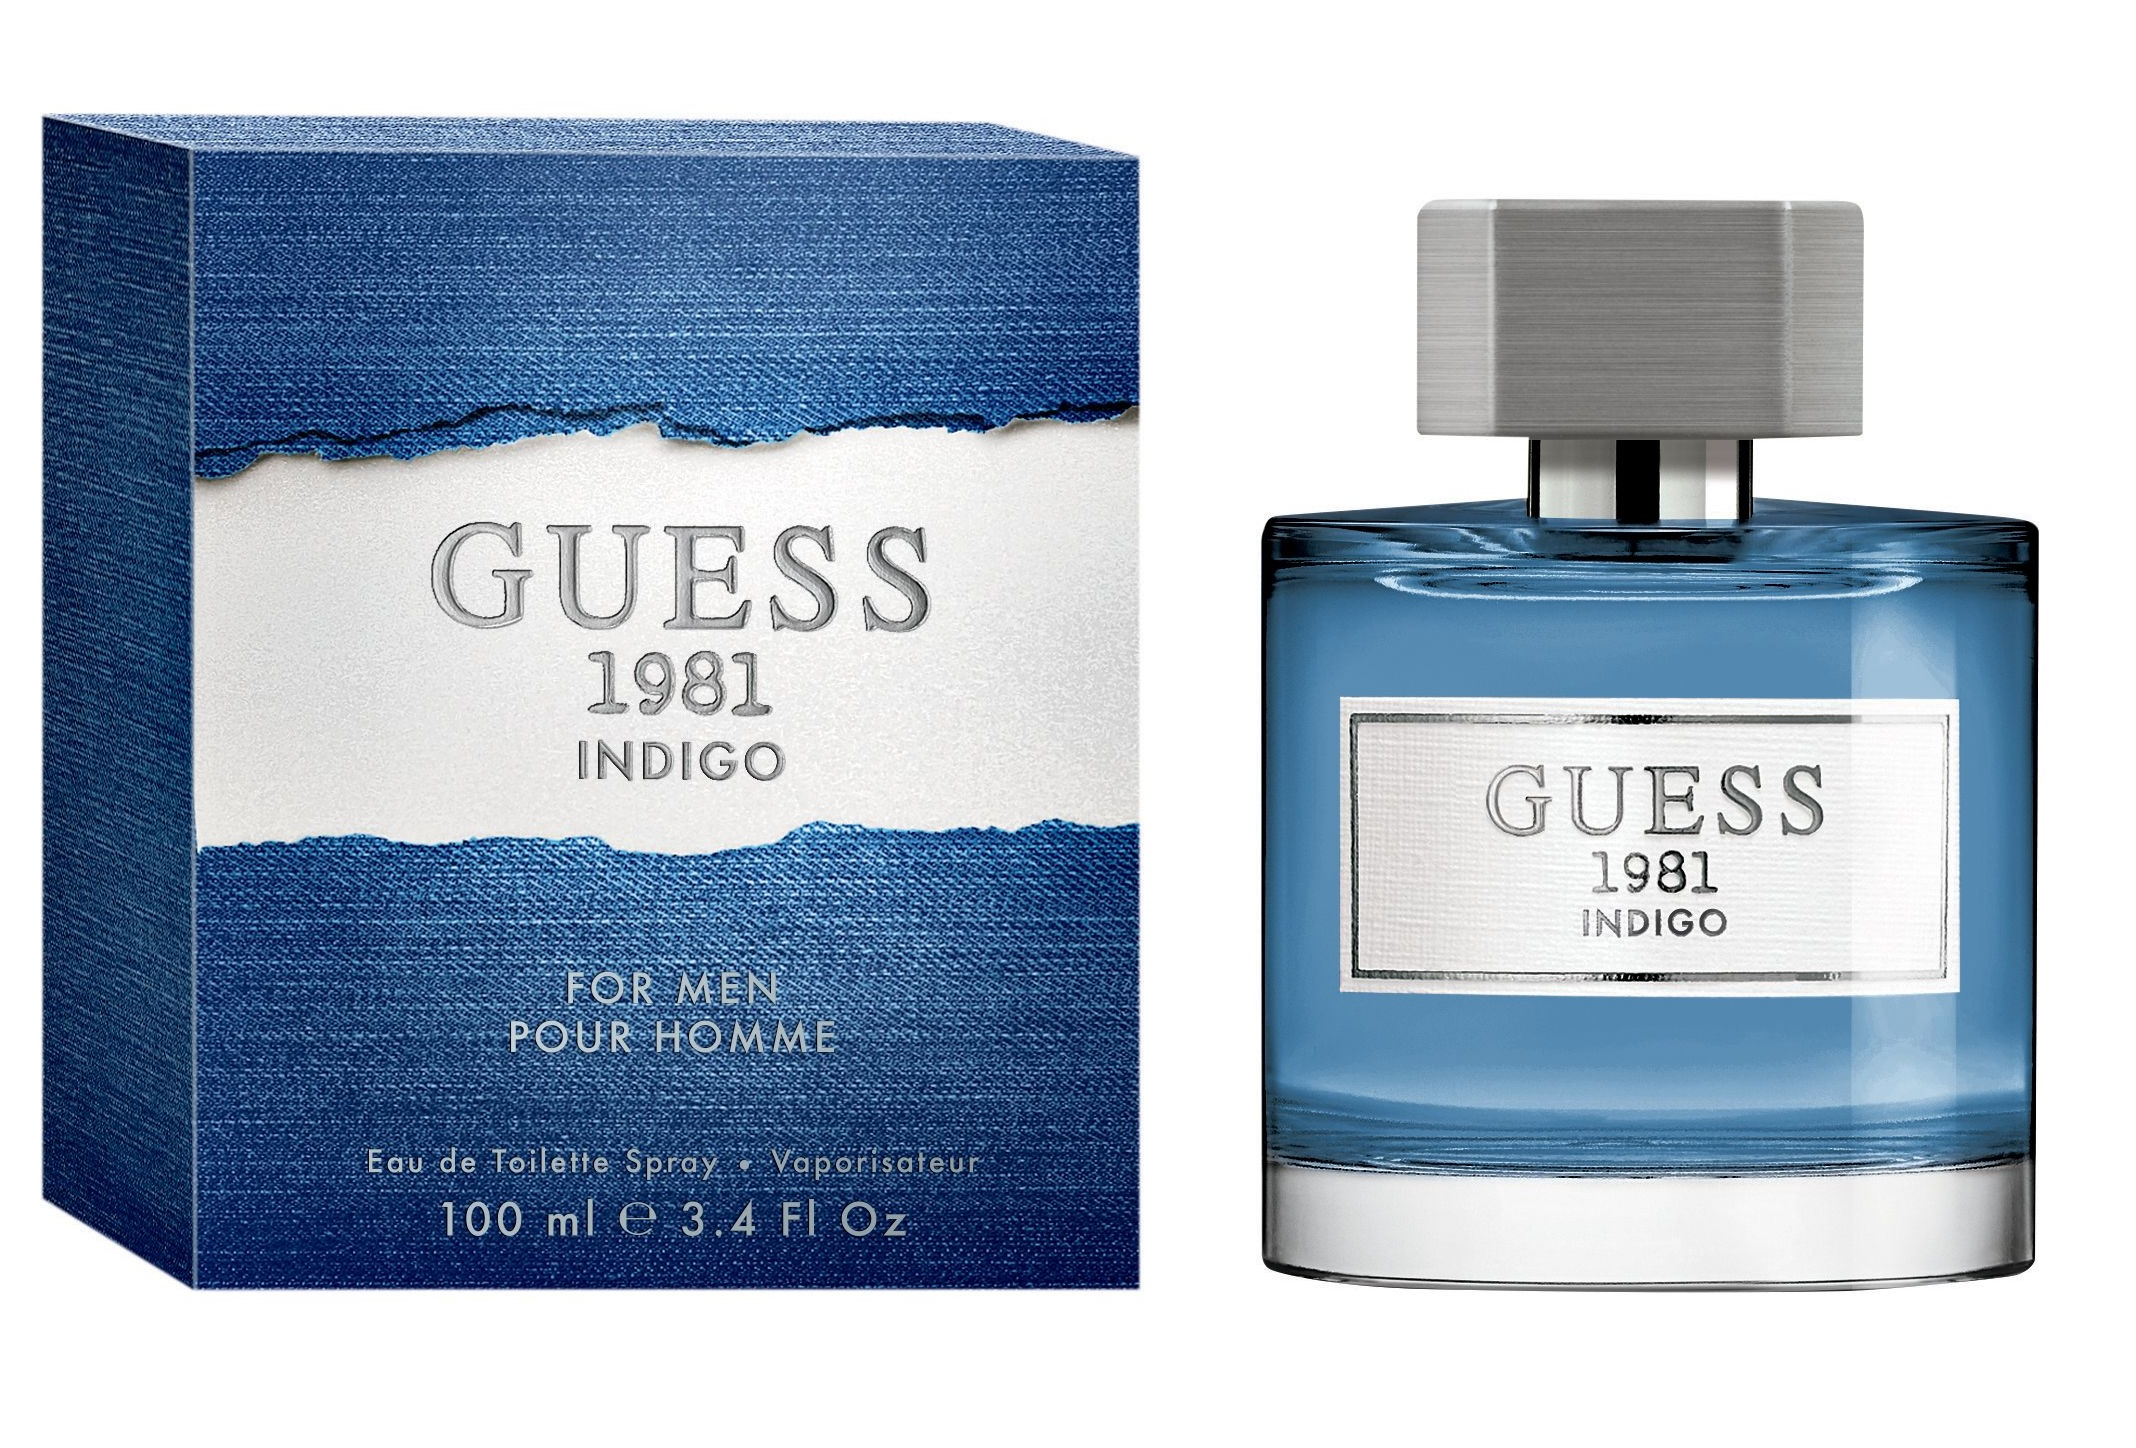 Guess 1981 Indigo for Men Guess cologne - a fragrance for ...